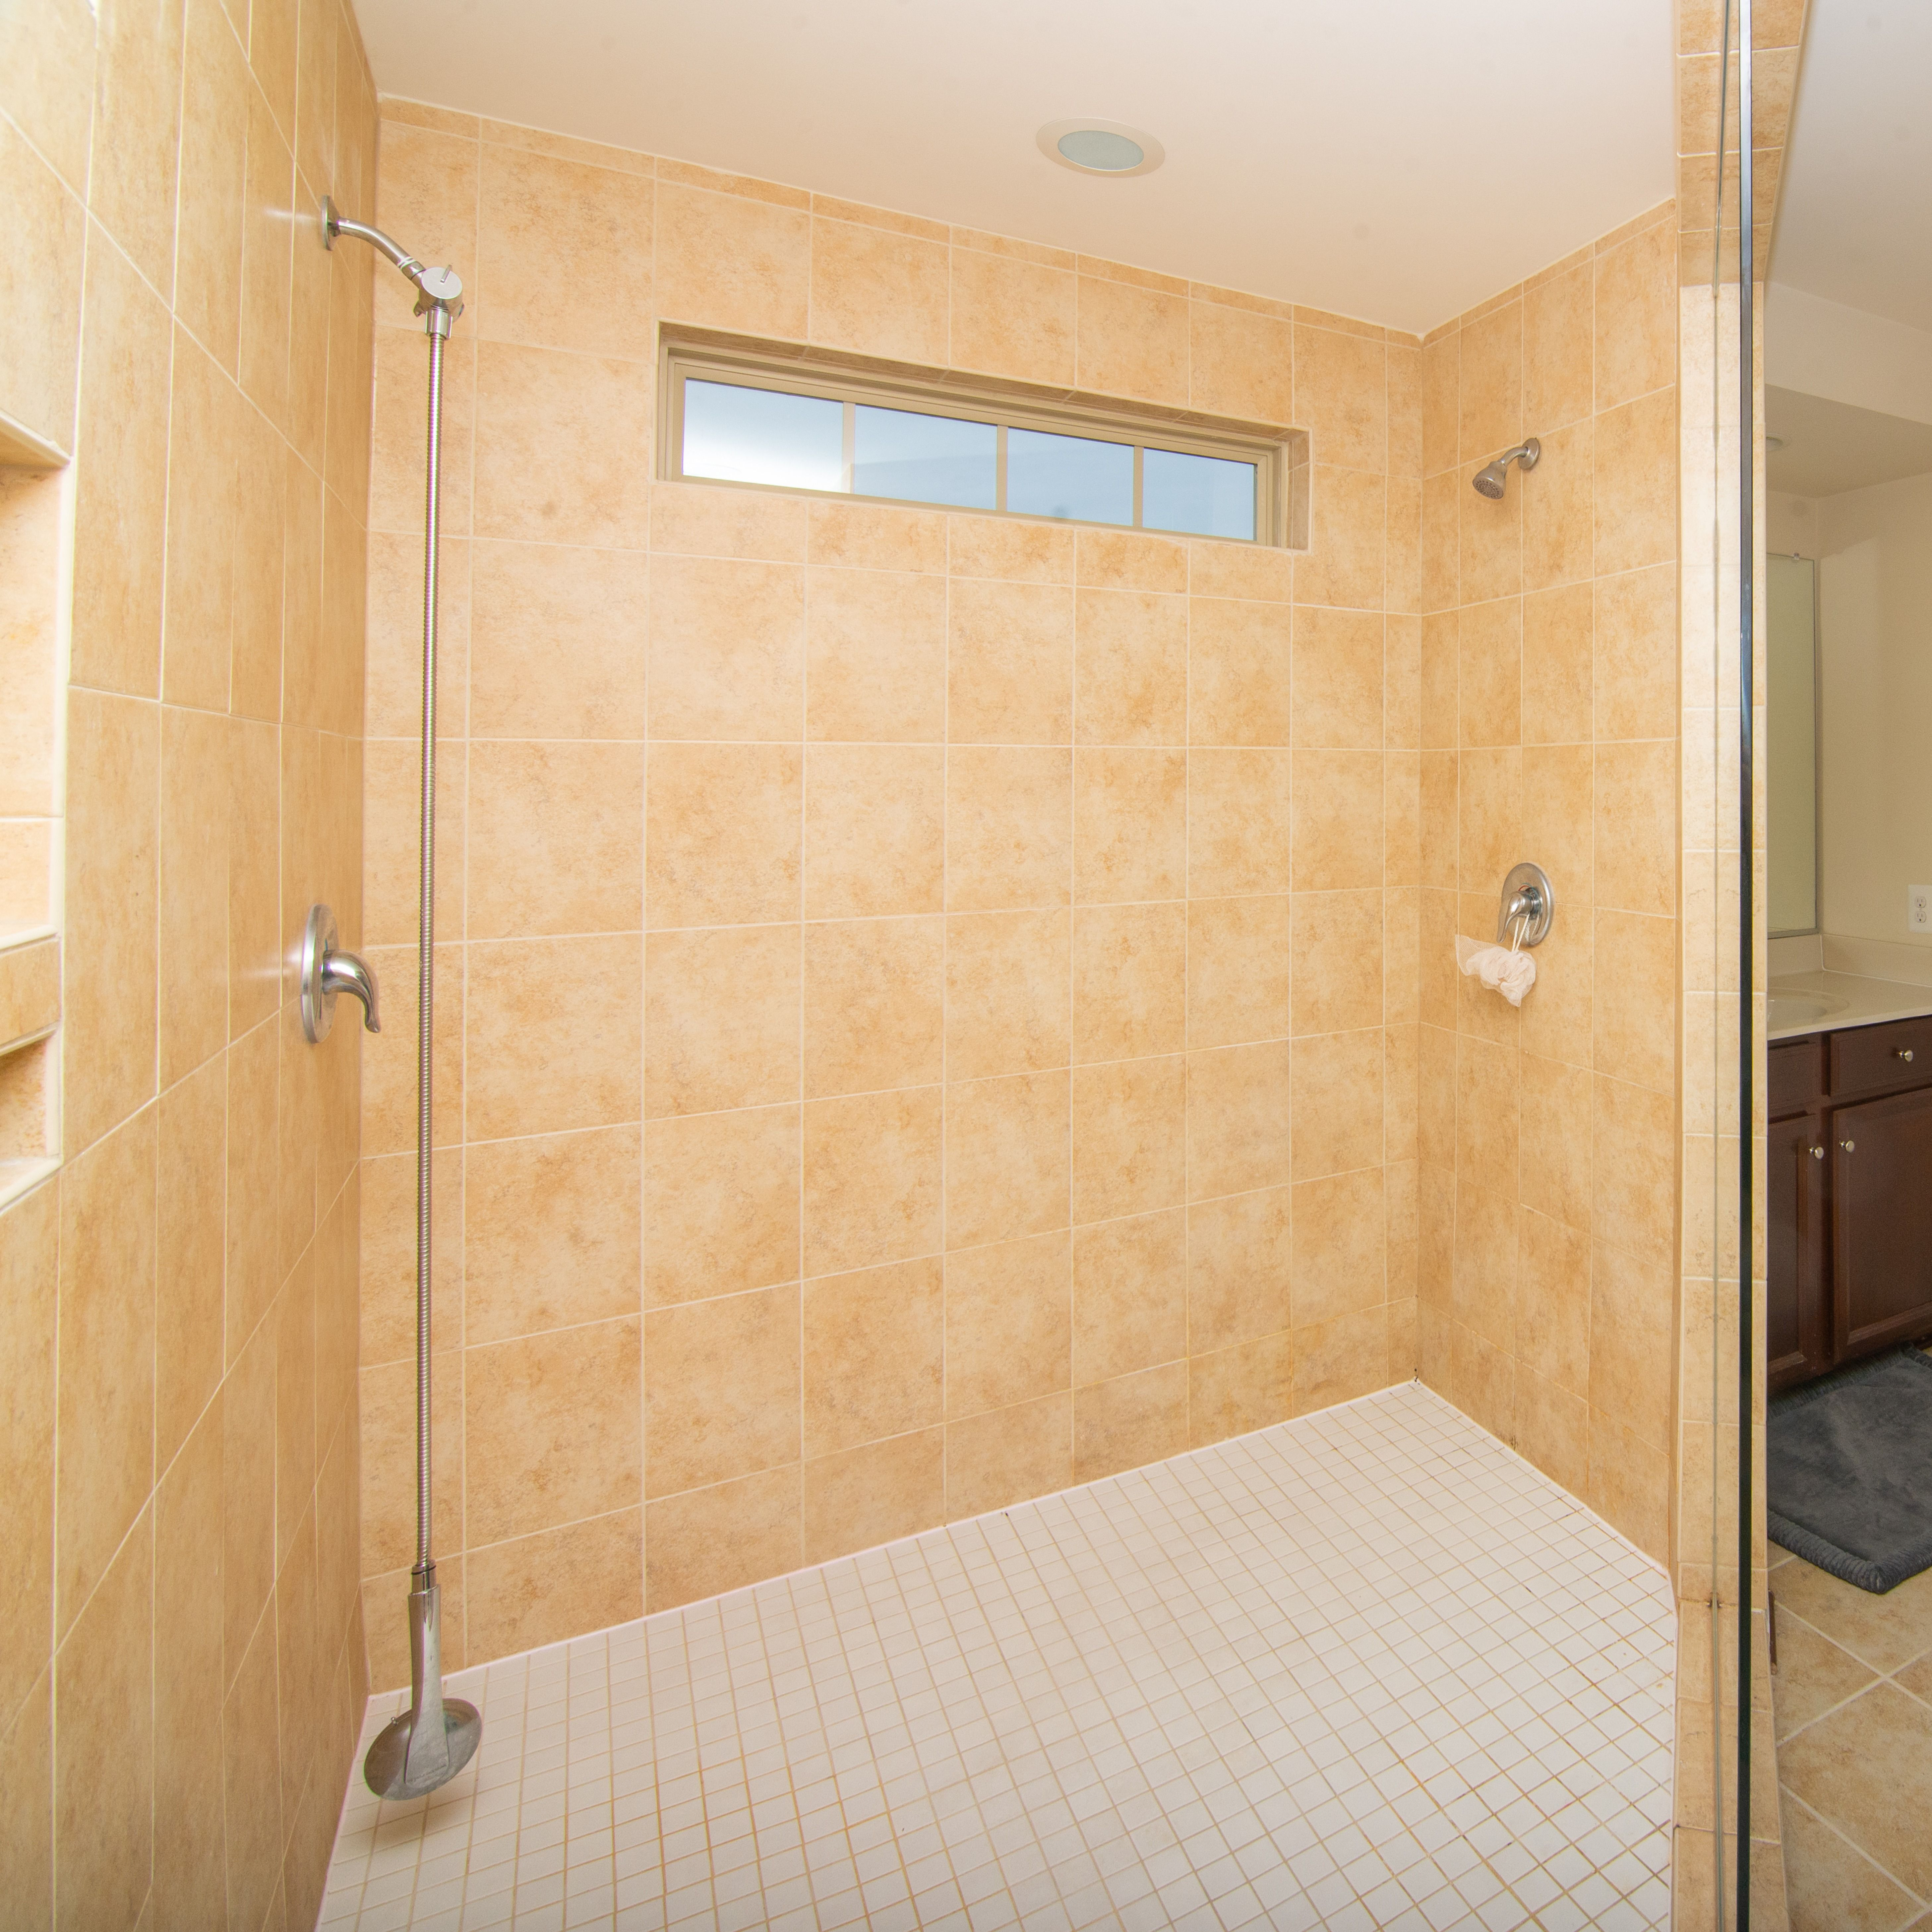 Luxurious Master Bathroom With Huge Tile Shower Located In The